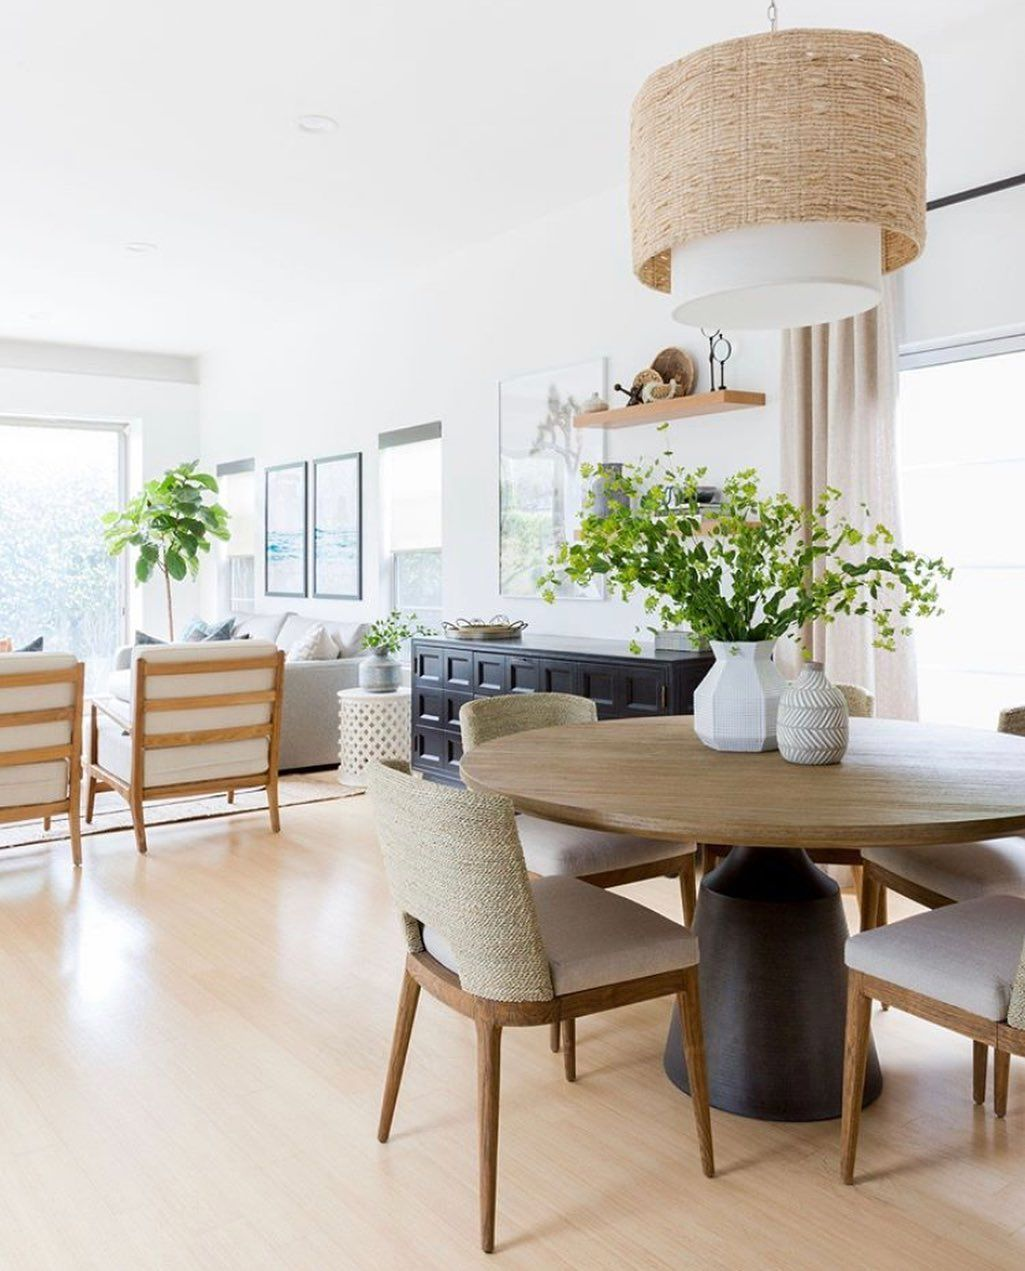 Casual Dining Rooms Decorating Ideas For A Soothing Interior: Home Decor Farmhouse .Home Decor Farmhouse In 2020